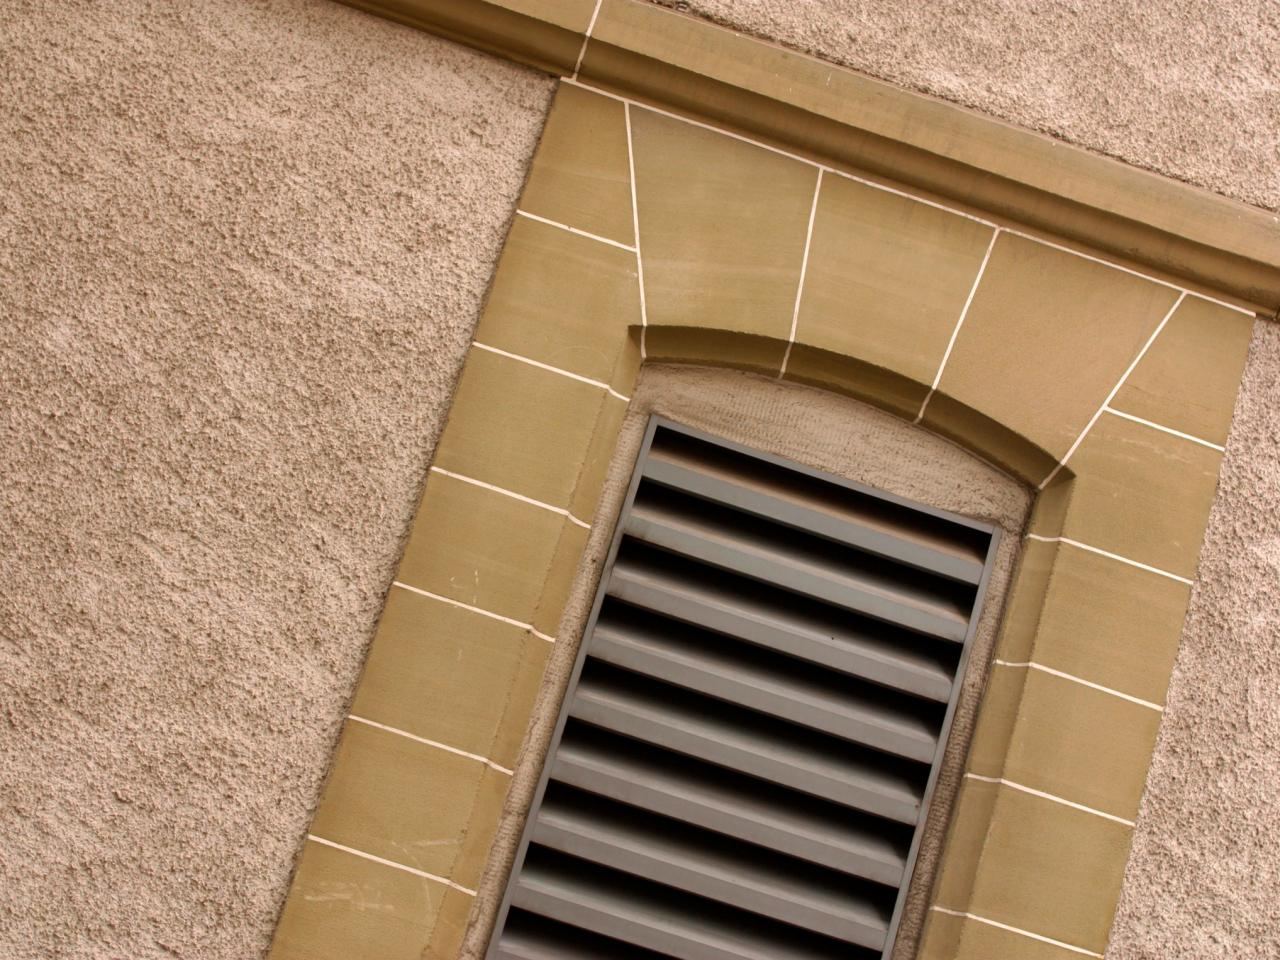 How To Replace A Heating Vent Cover Hgtv